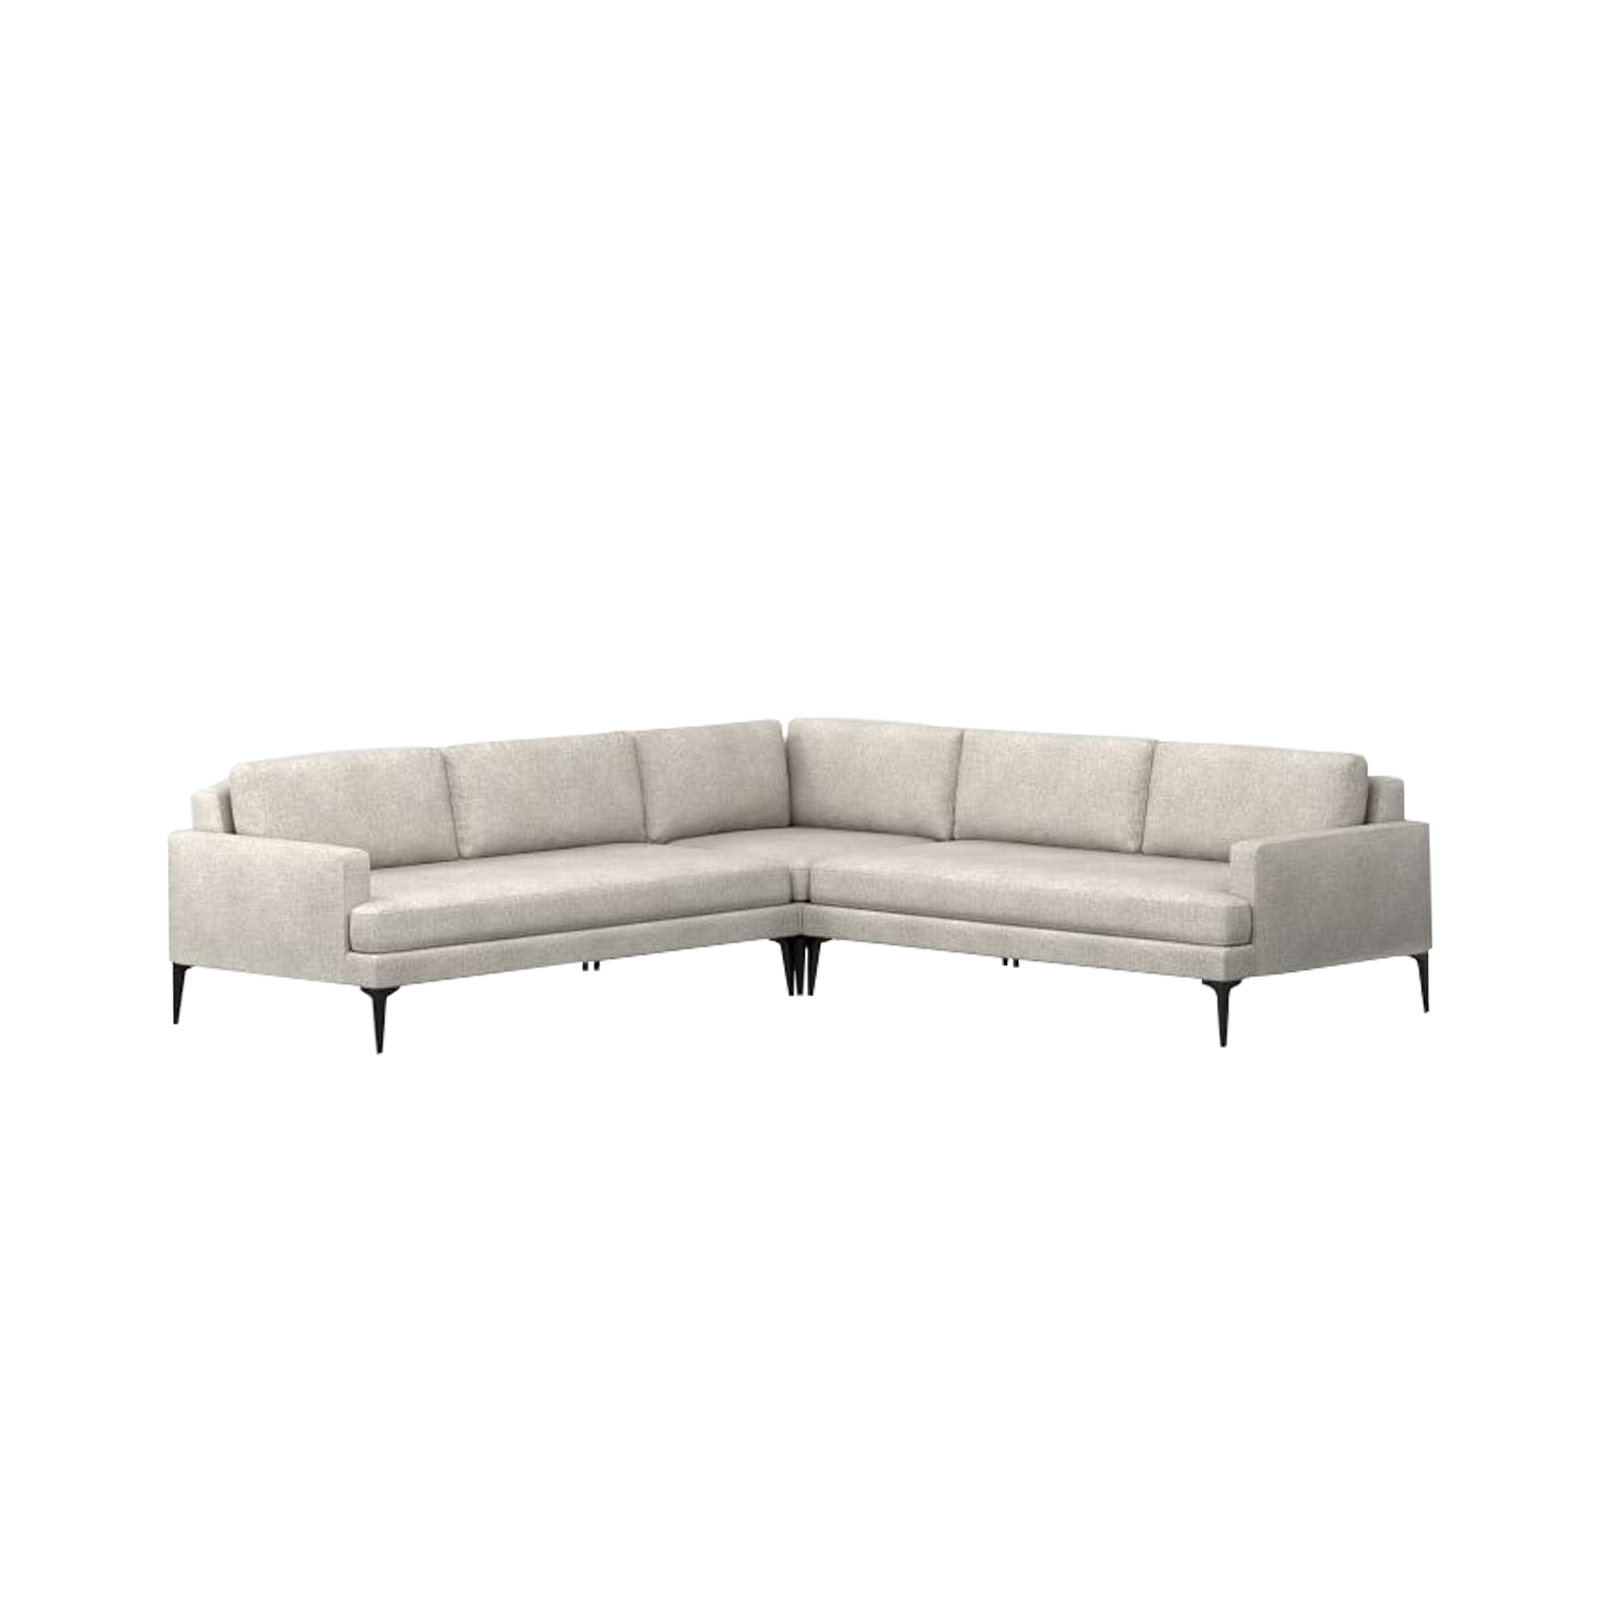 Couch L Form Andes L Shaped Sectional Event Trade Show Furniture Rental